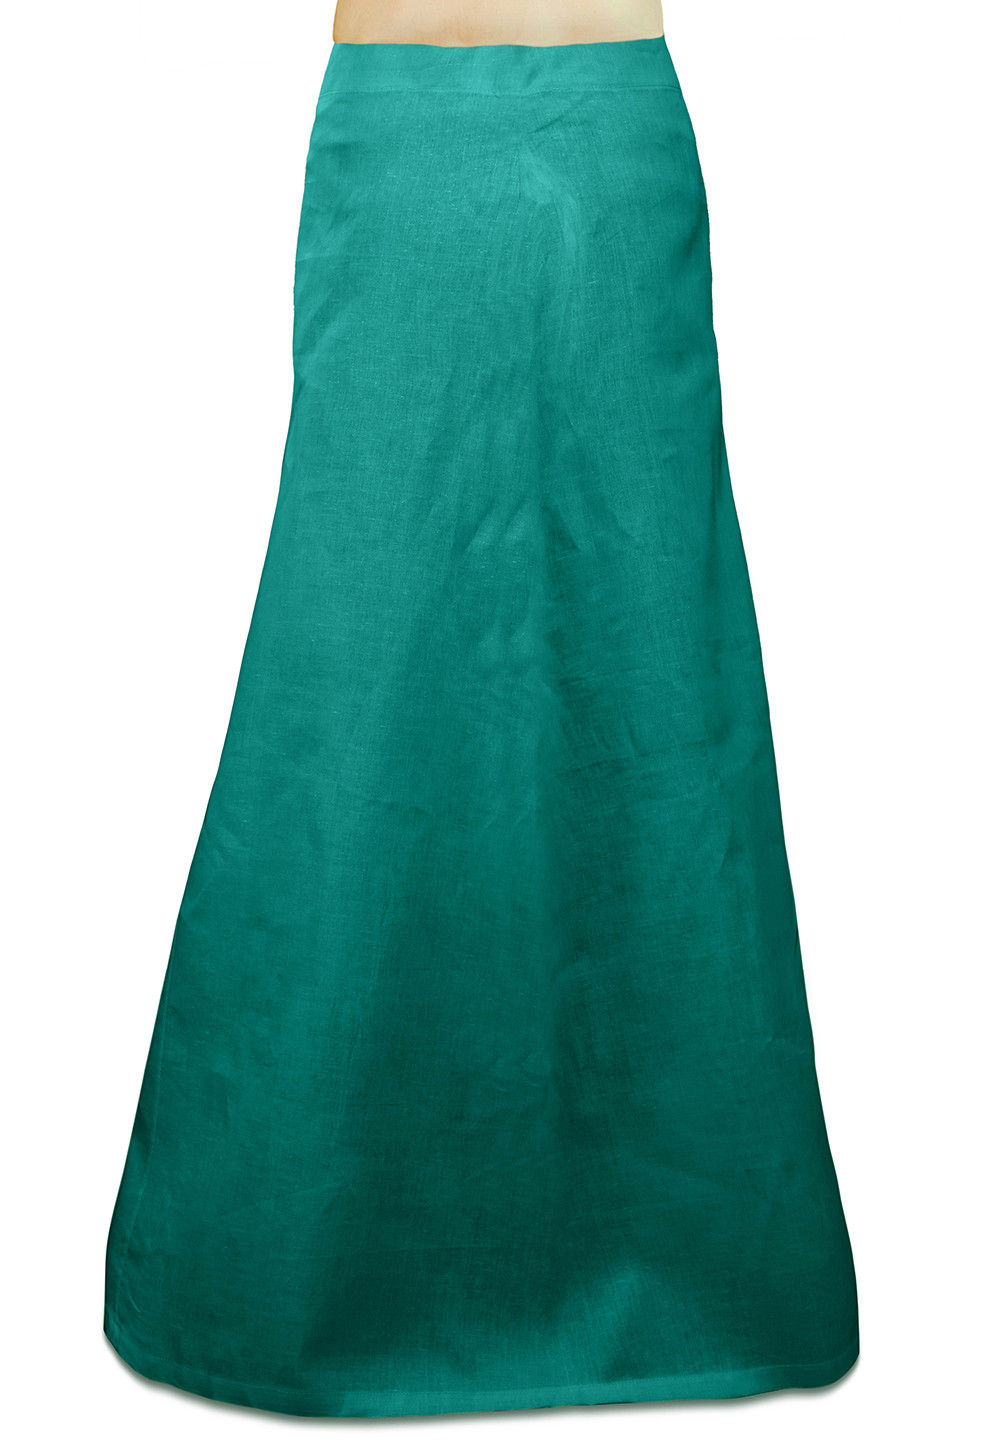 Cotton Petticoat in Teal Blue